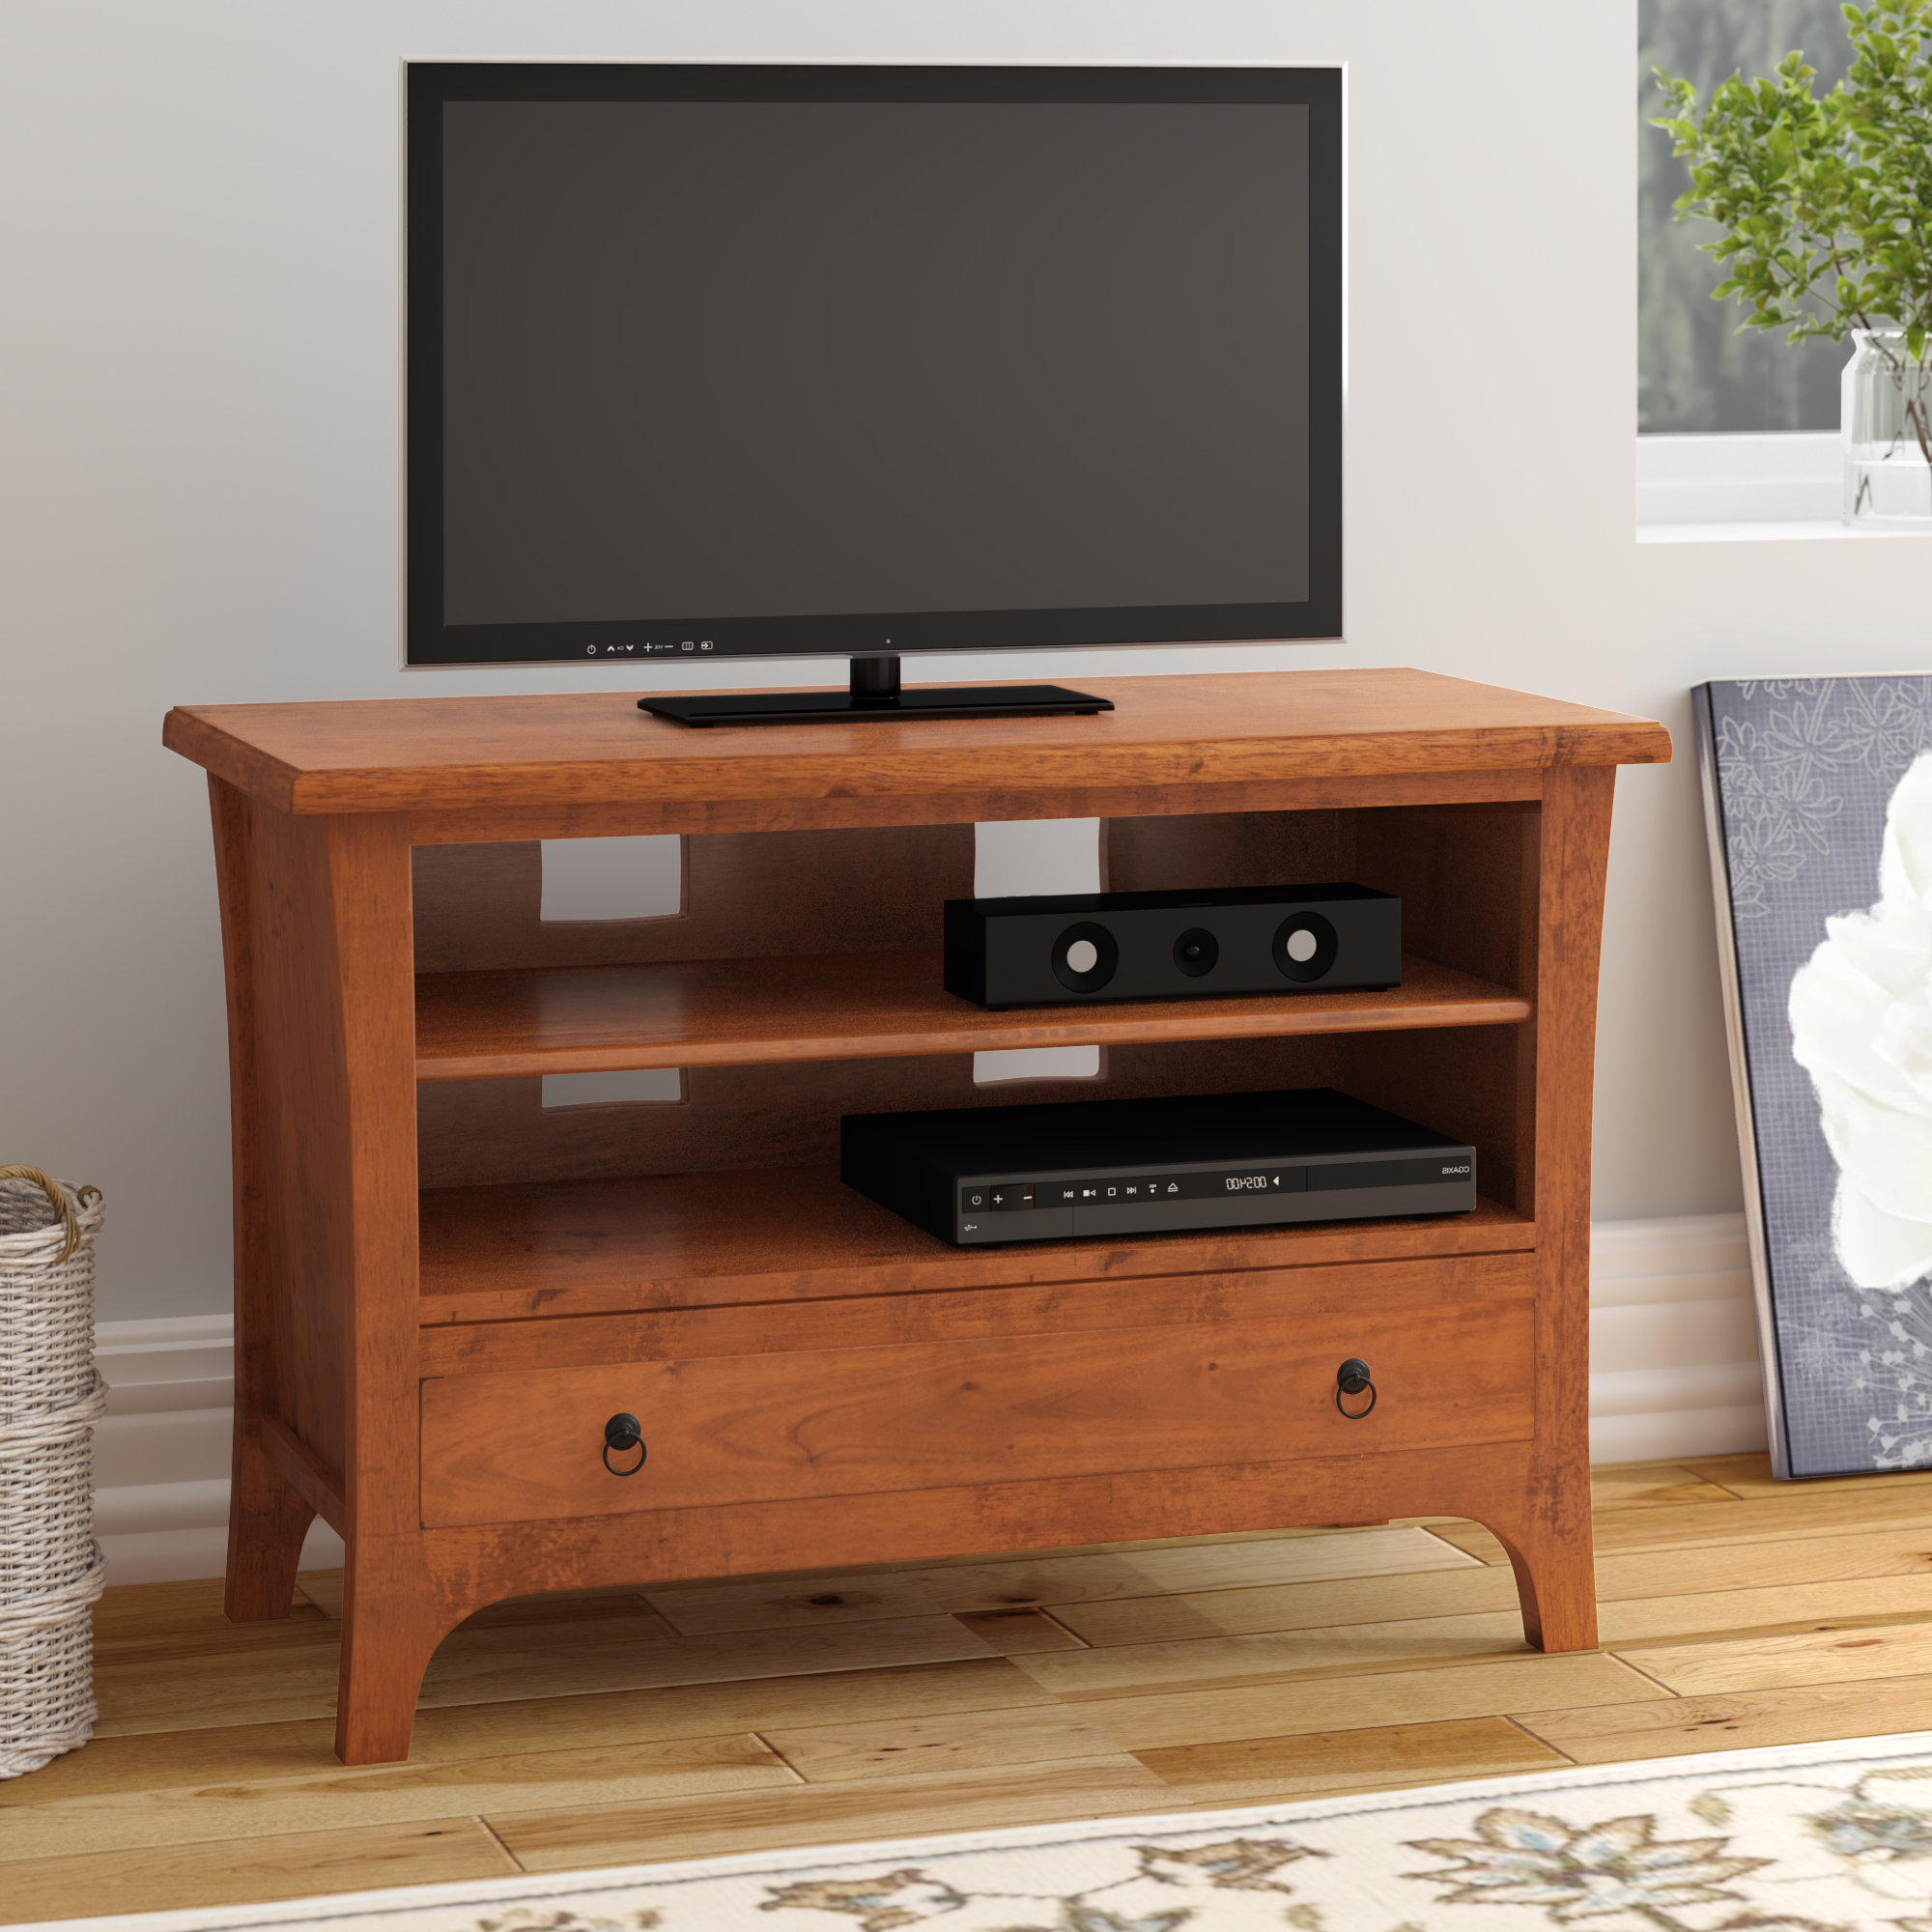 Widely Used Mahogany Tv Stands & Entertainment Units You'll Love (View 20 of 20)